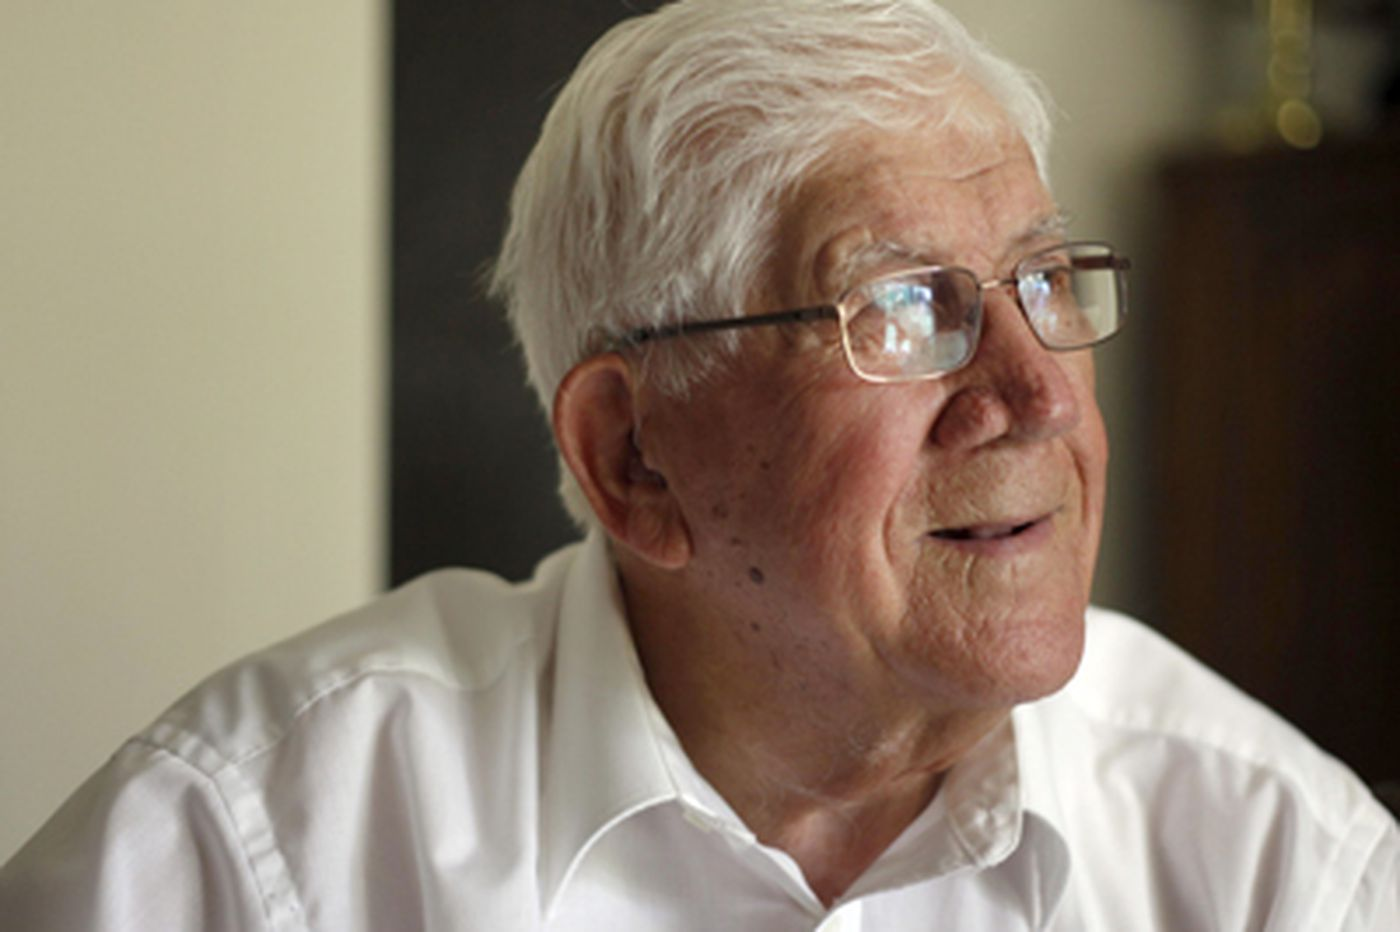 A West Deptford man remembers the Longest Day